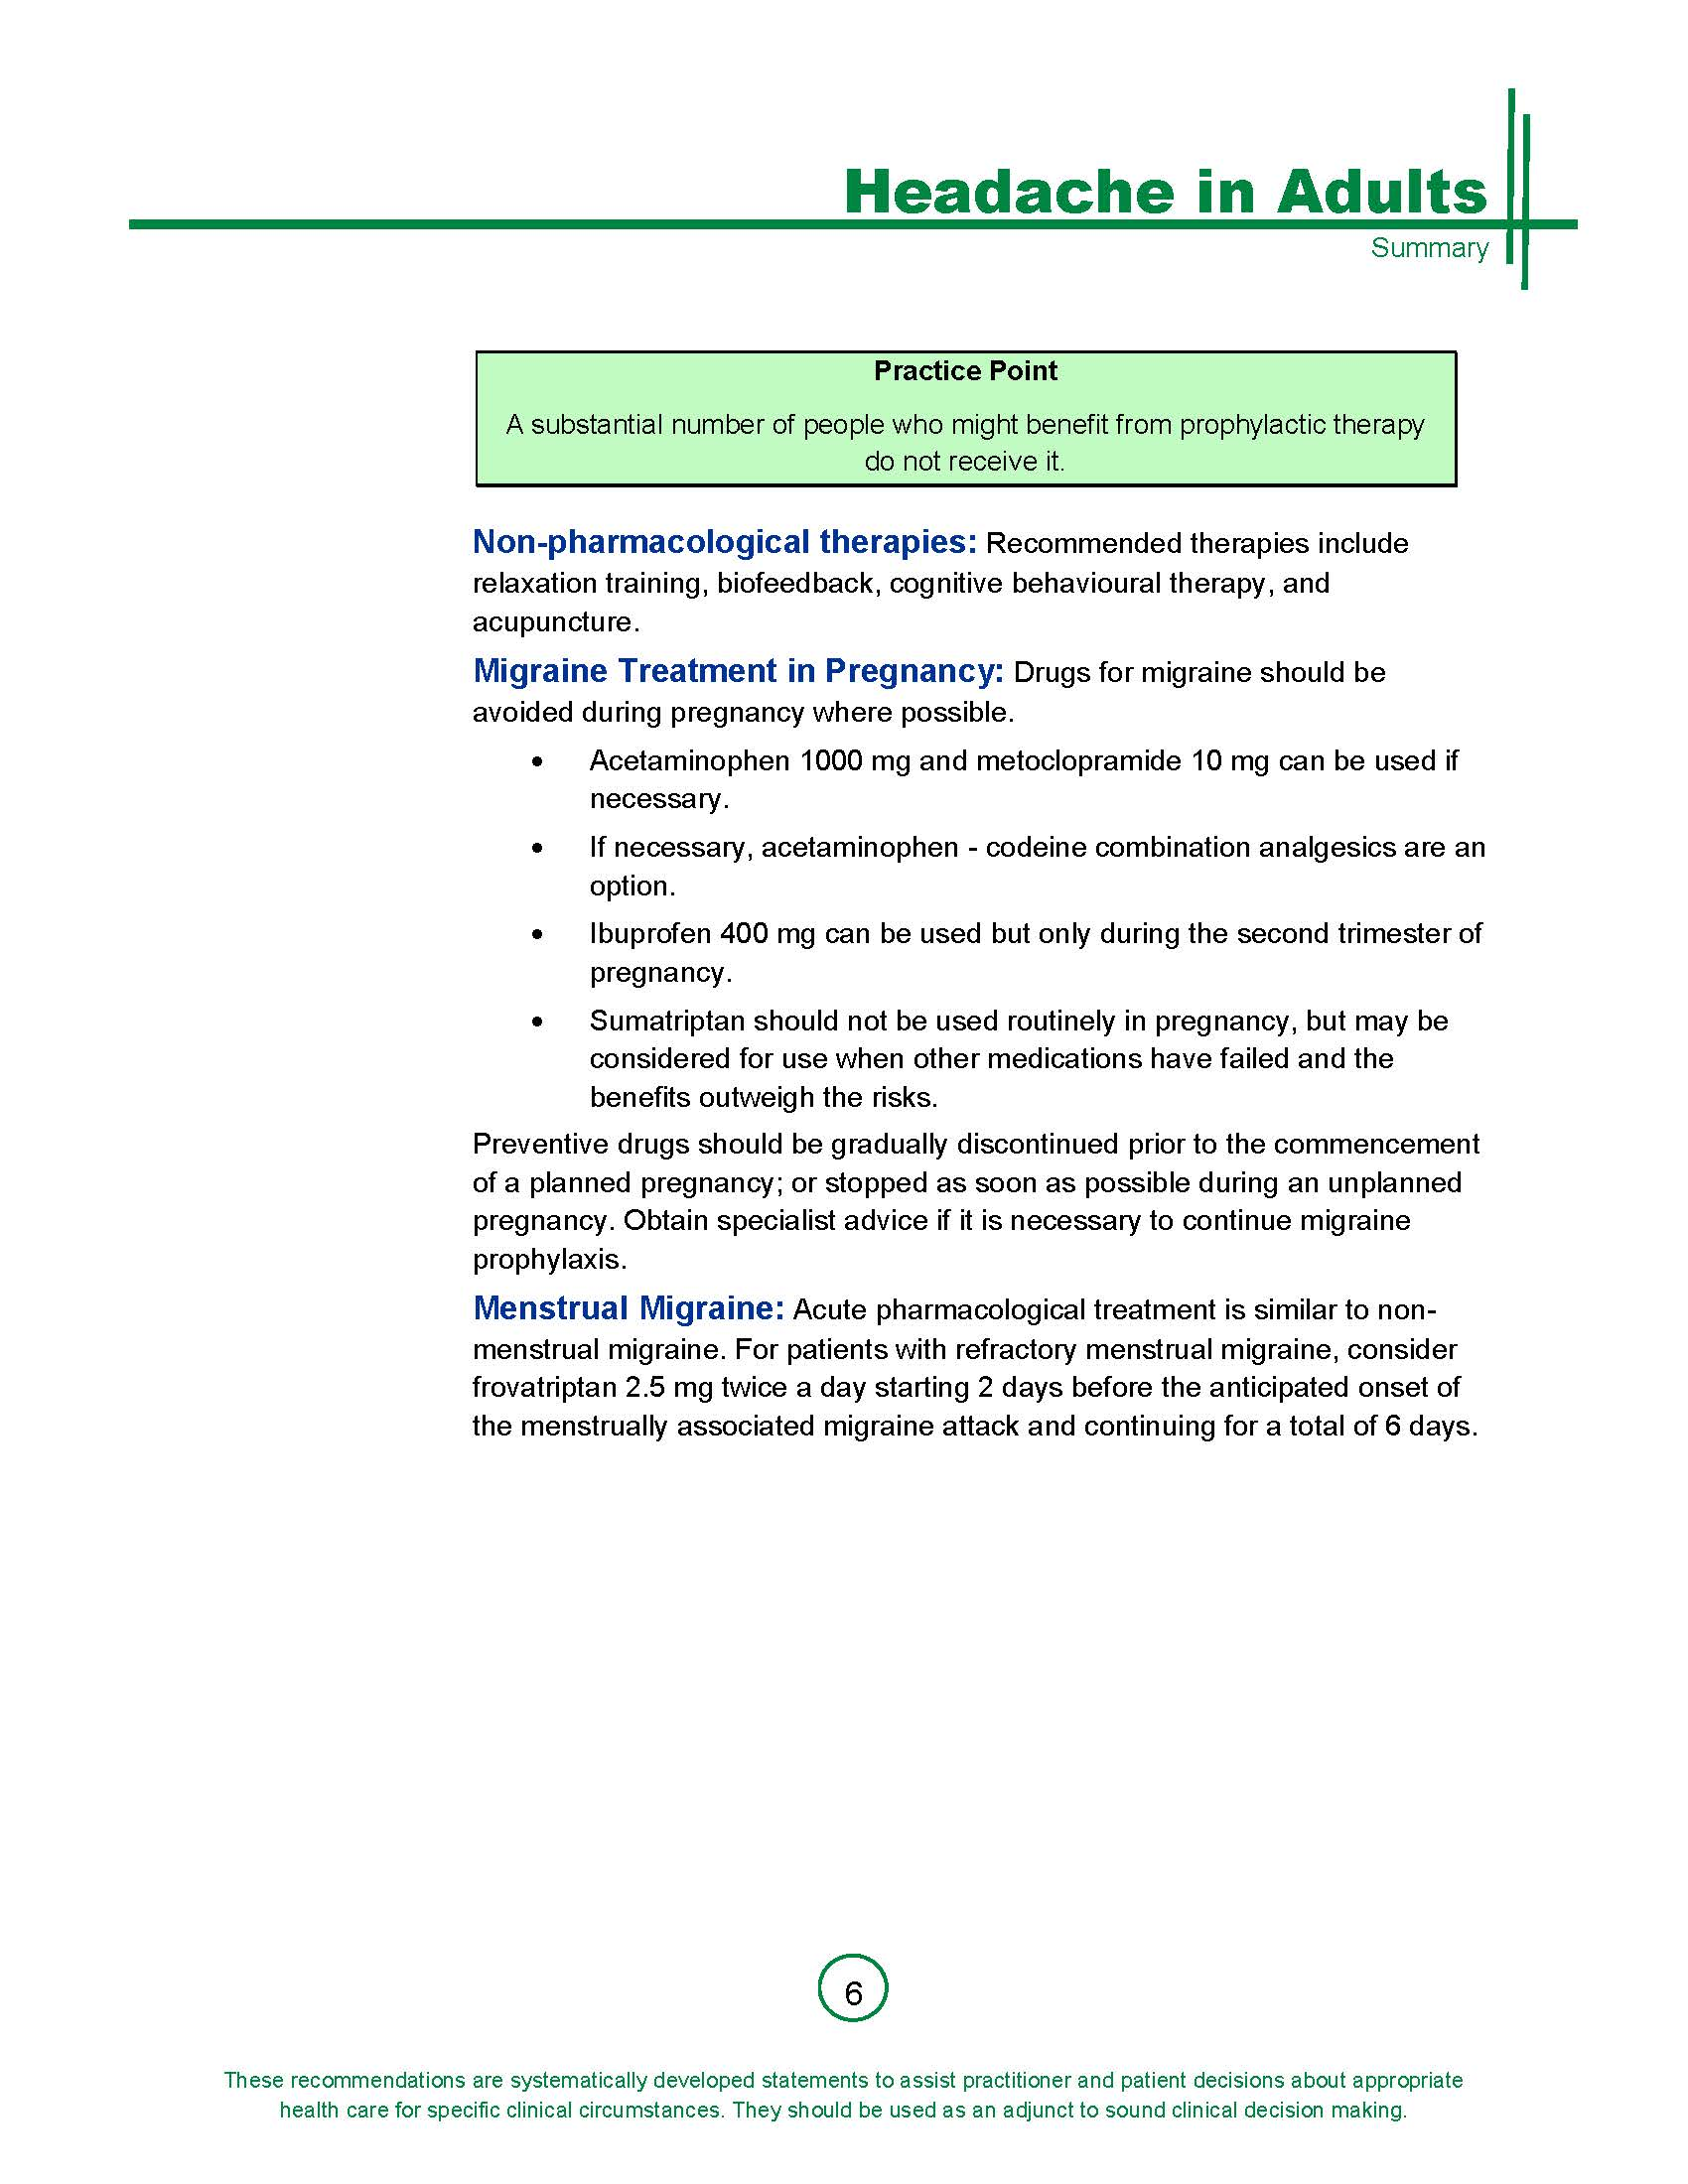 Summary Guideline for Management of Primary Headache in Adults_Page_6.jpg